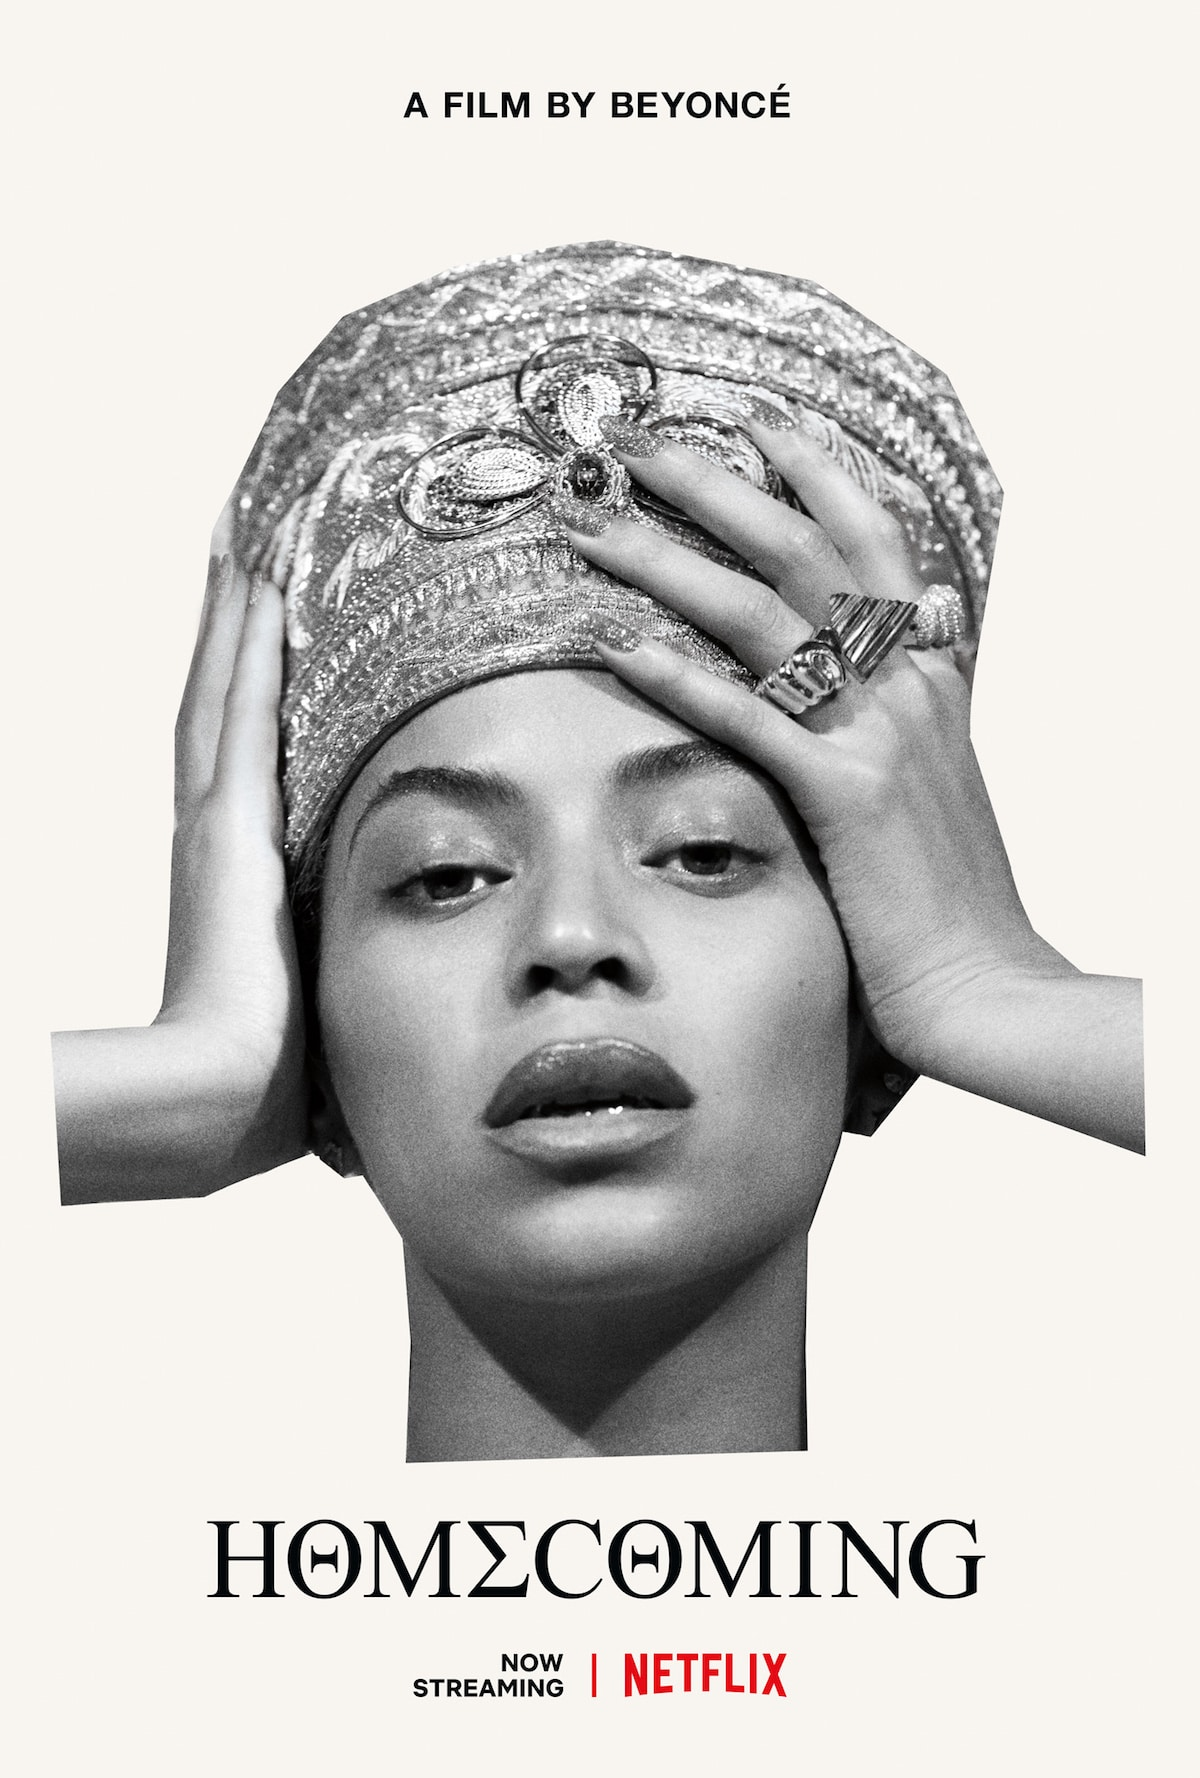 The full cover for Beyonce's Homecoming documentary